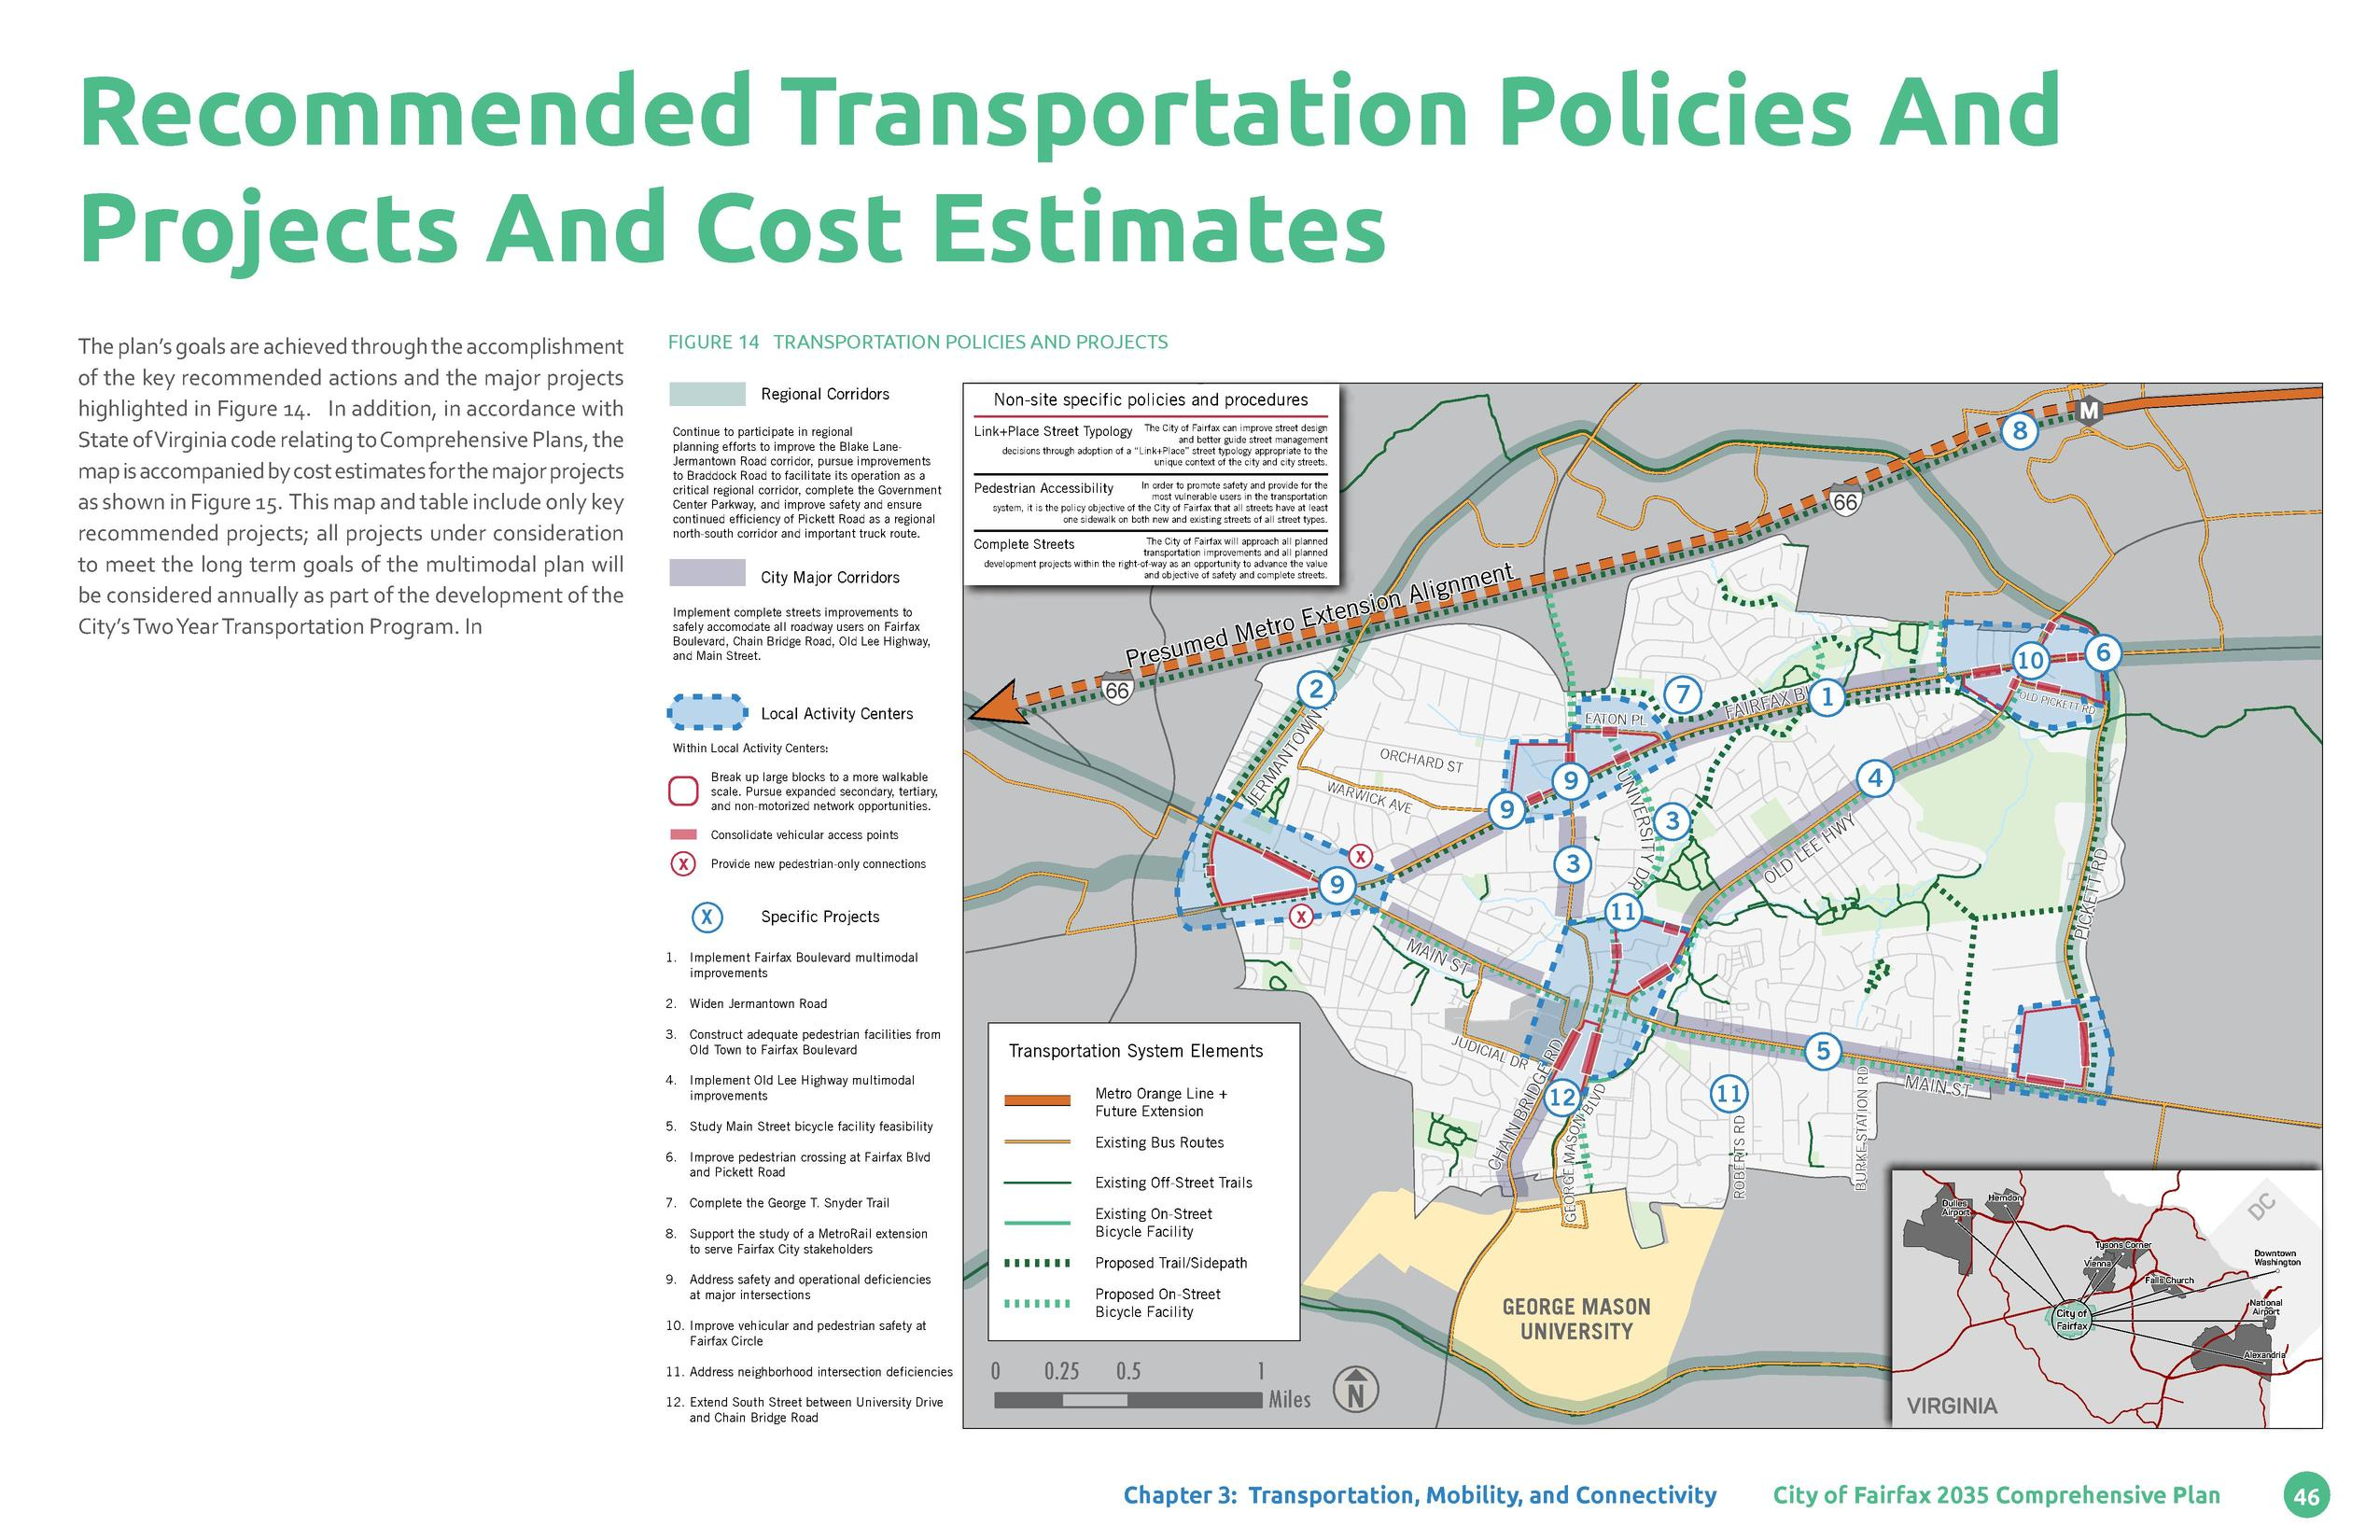 Recommended Transportation Policies And Projects And Cost Estimates Figure 14 TRANSPORTATION POLICIES AND PROJECTS Regiona...